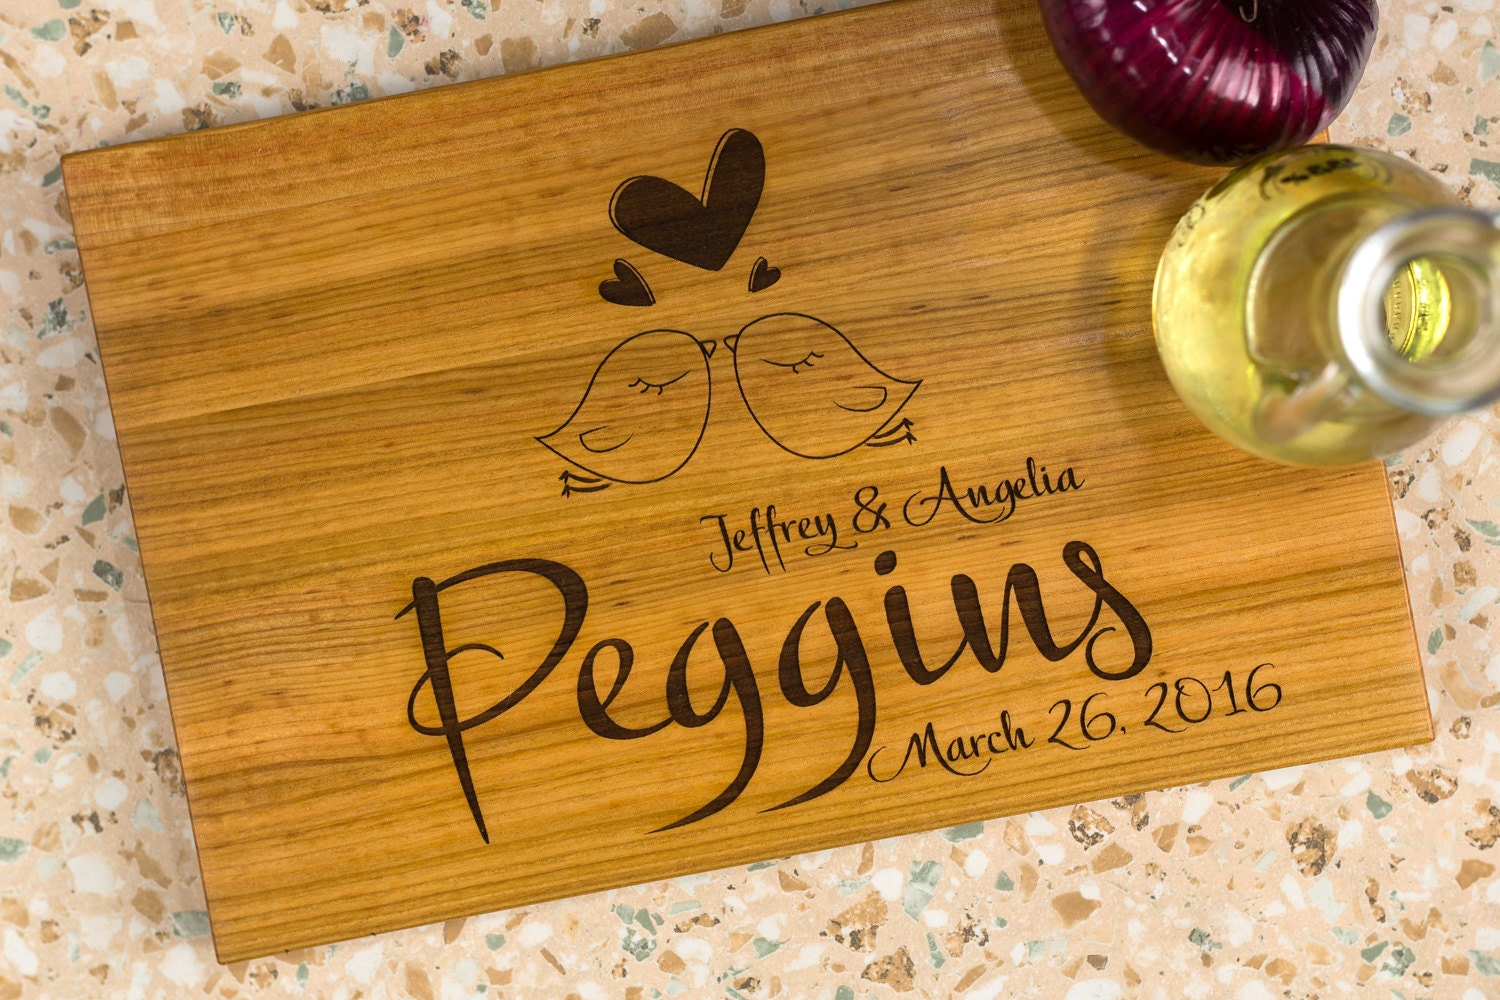 Luxury Wedding Gifts For Couple : Couple cutting board cutting board for wedding gift luxury